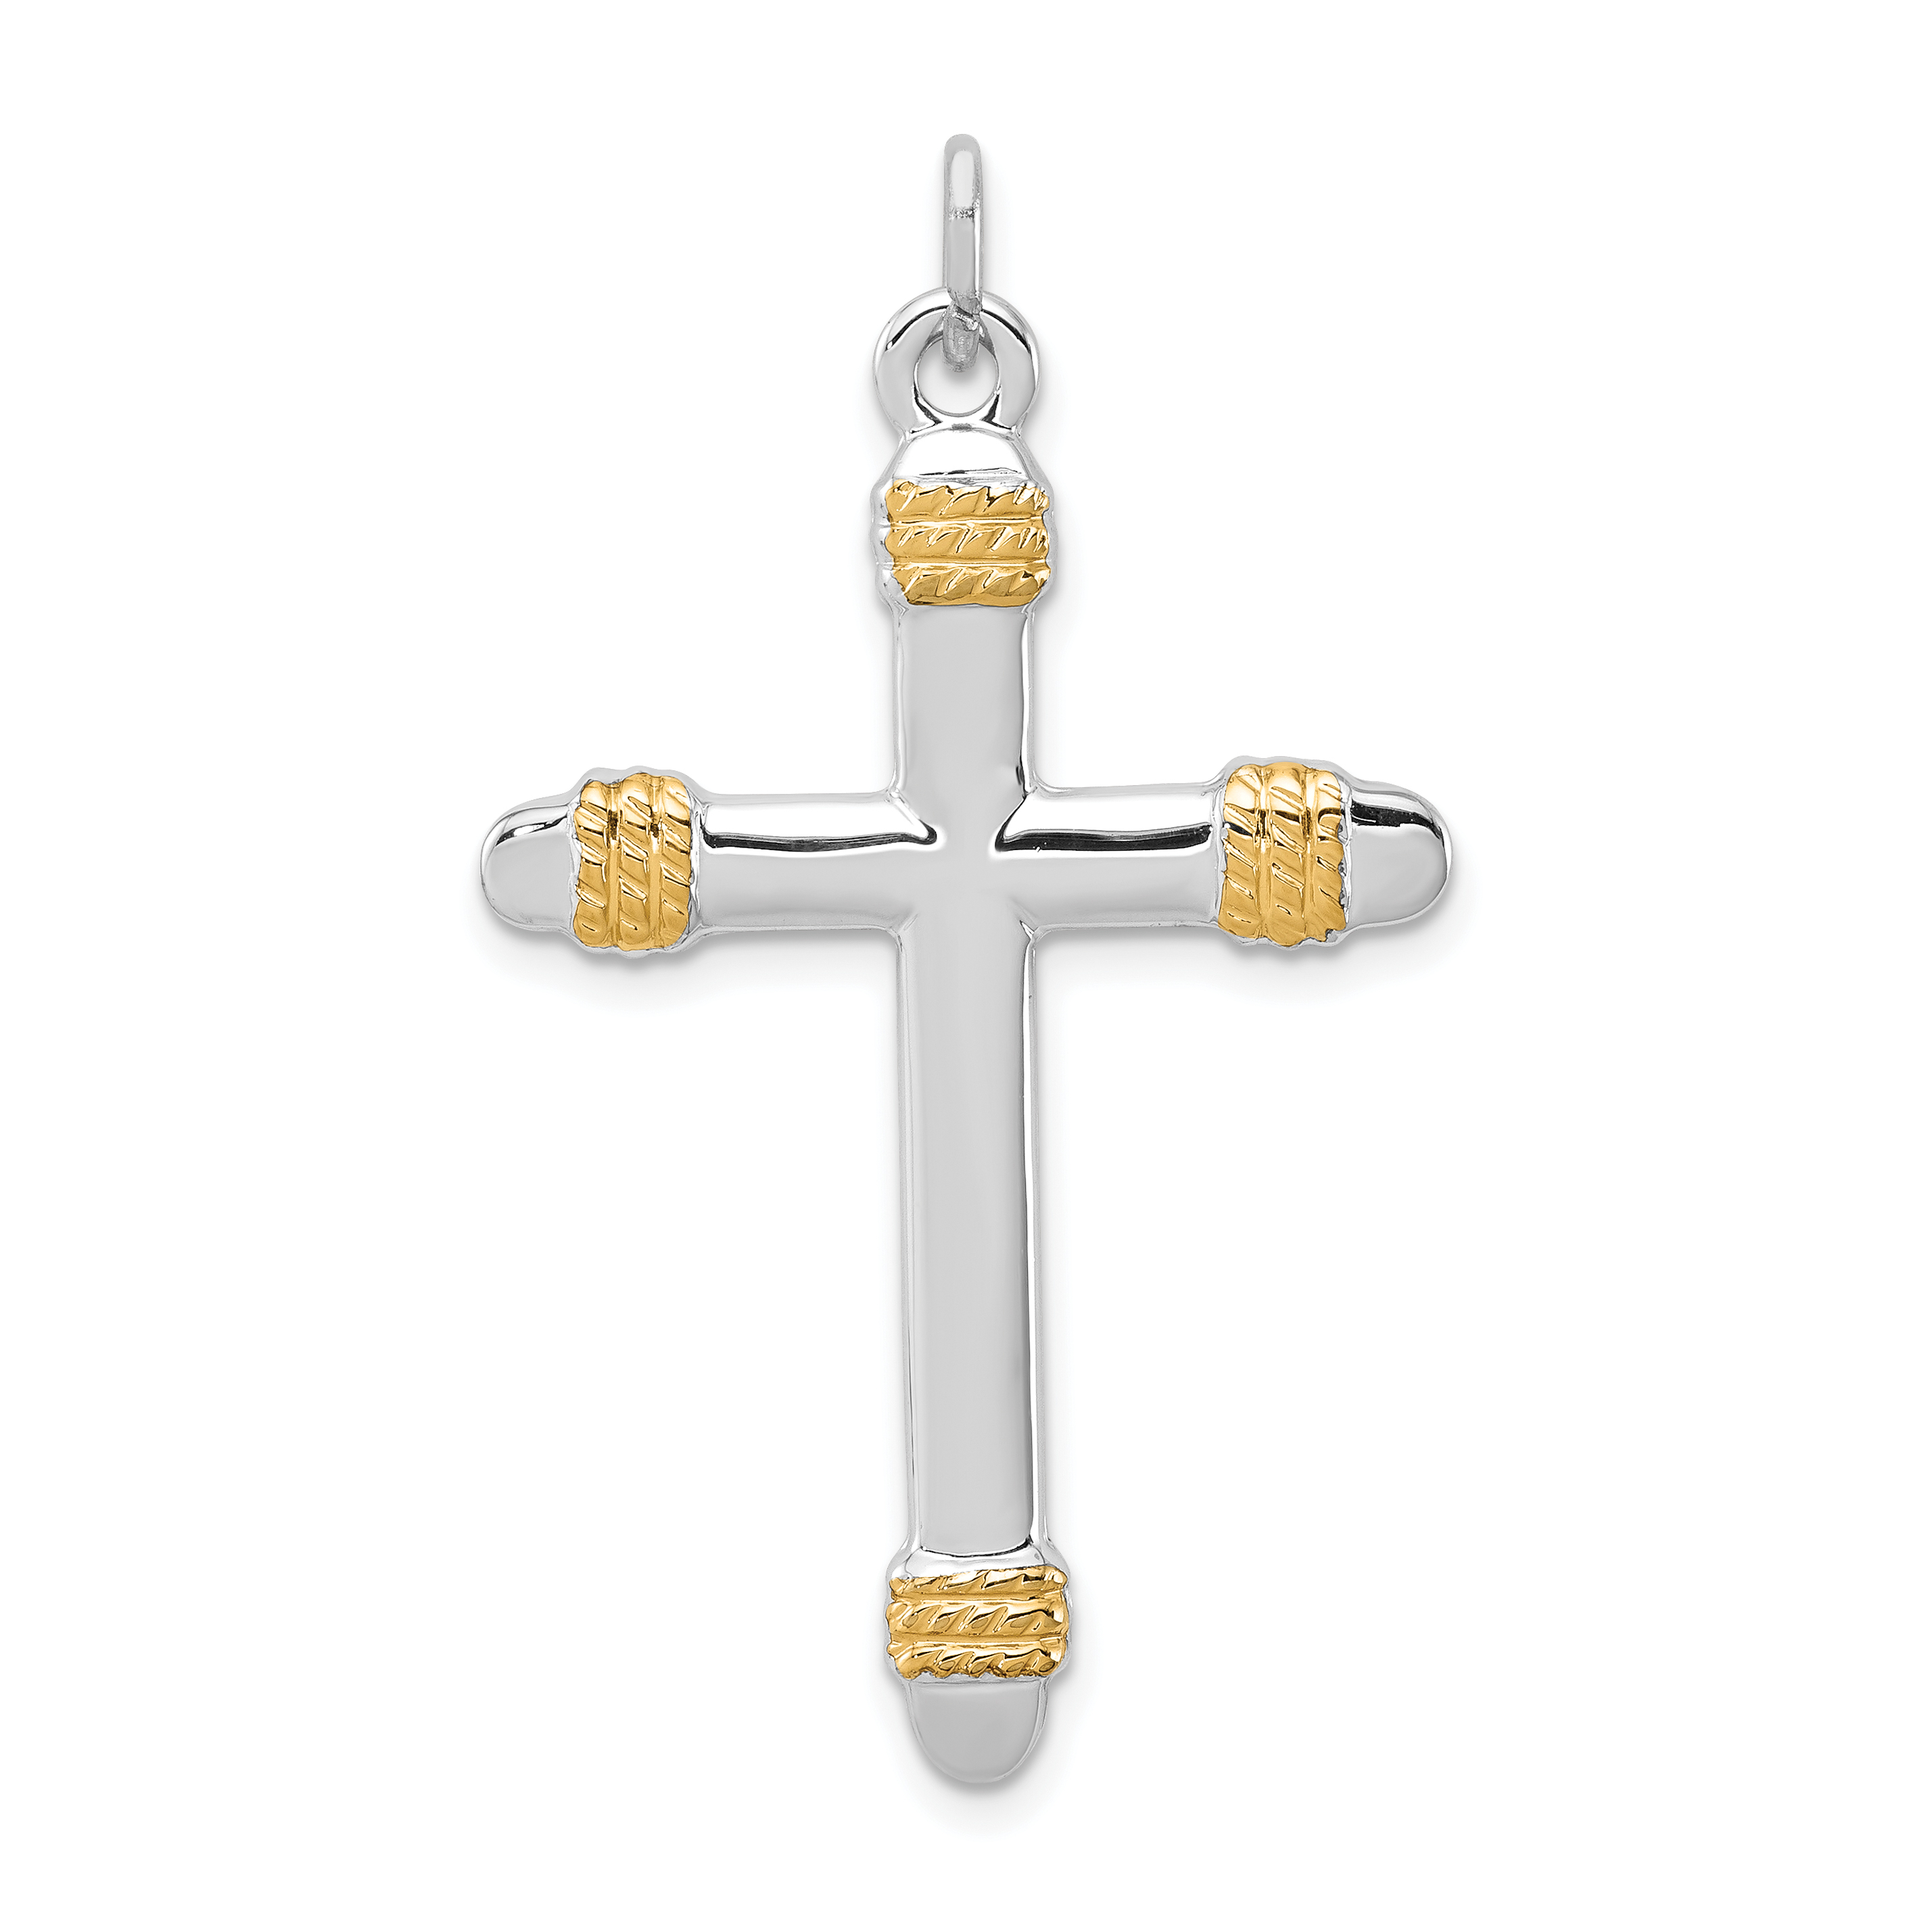 925 Sterling Silver 18k Gold Plated Rope Cross Religious Pendant Charm Necklace Latin Fine Jewelry Gifts For Women For Her - image 2 of 2